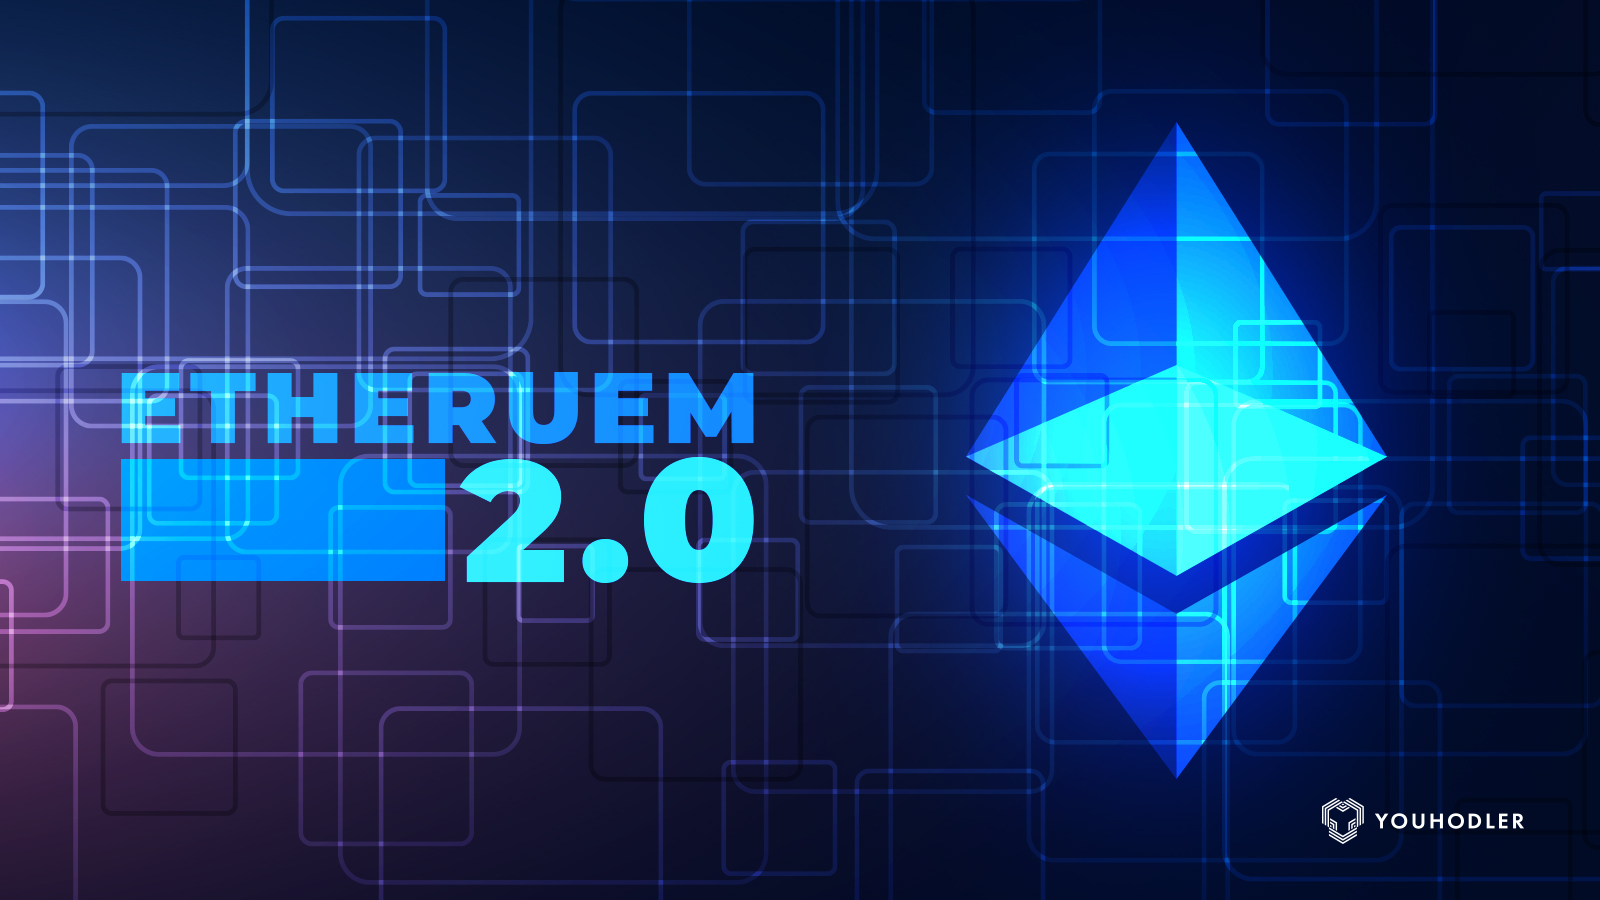 ethereum 2.0, ethereum lending, bitcoin value, borrow bitcoin, bitcoin loan sites